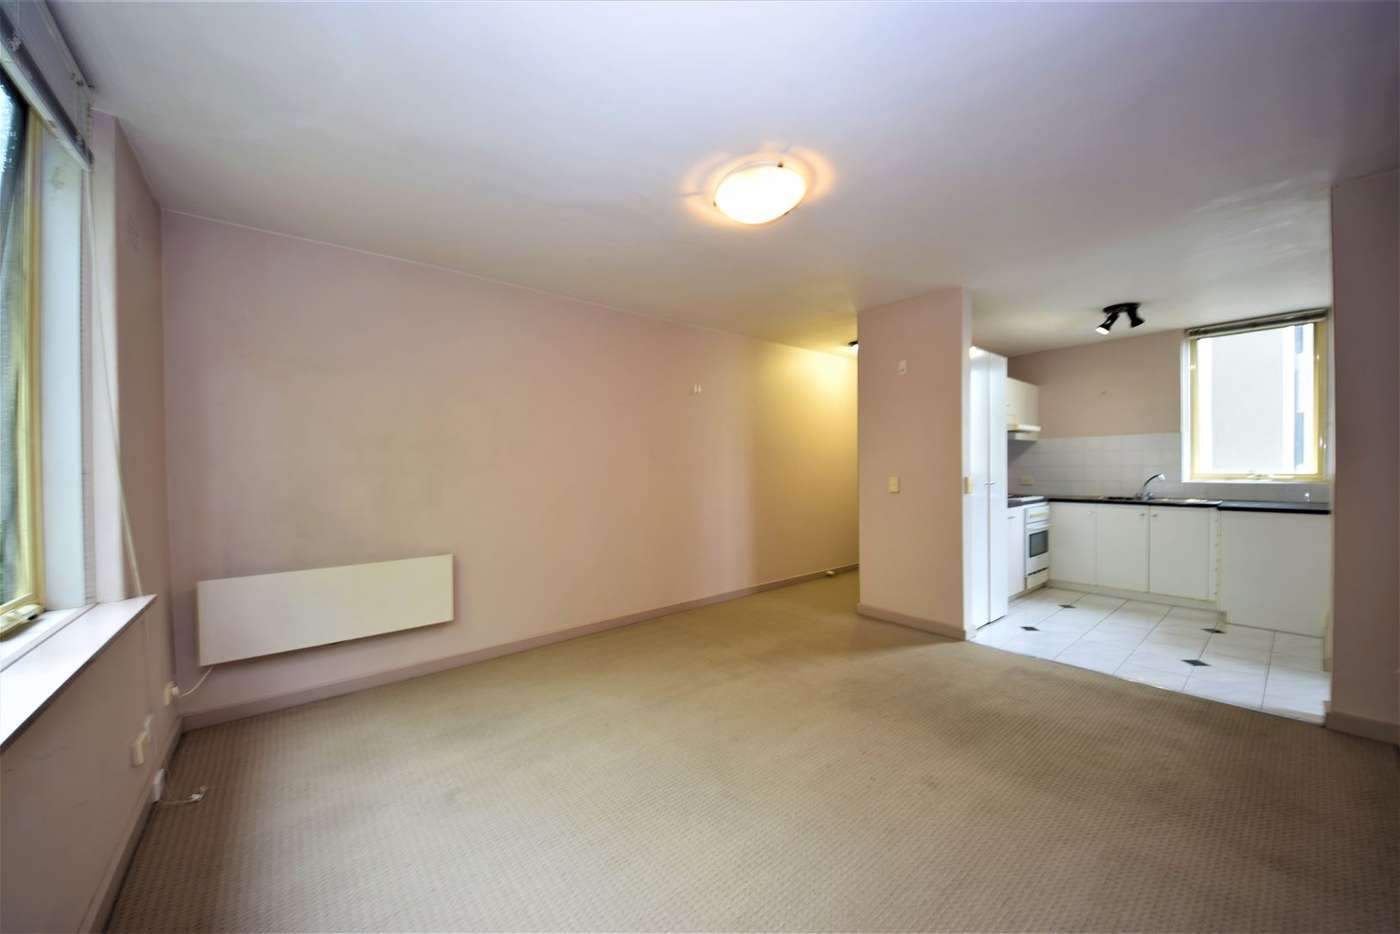 Sixth view of Homely unit listing, 4/43 Davis Avenue, South Yarra VIC 3141